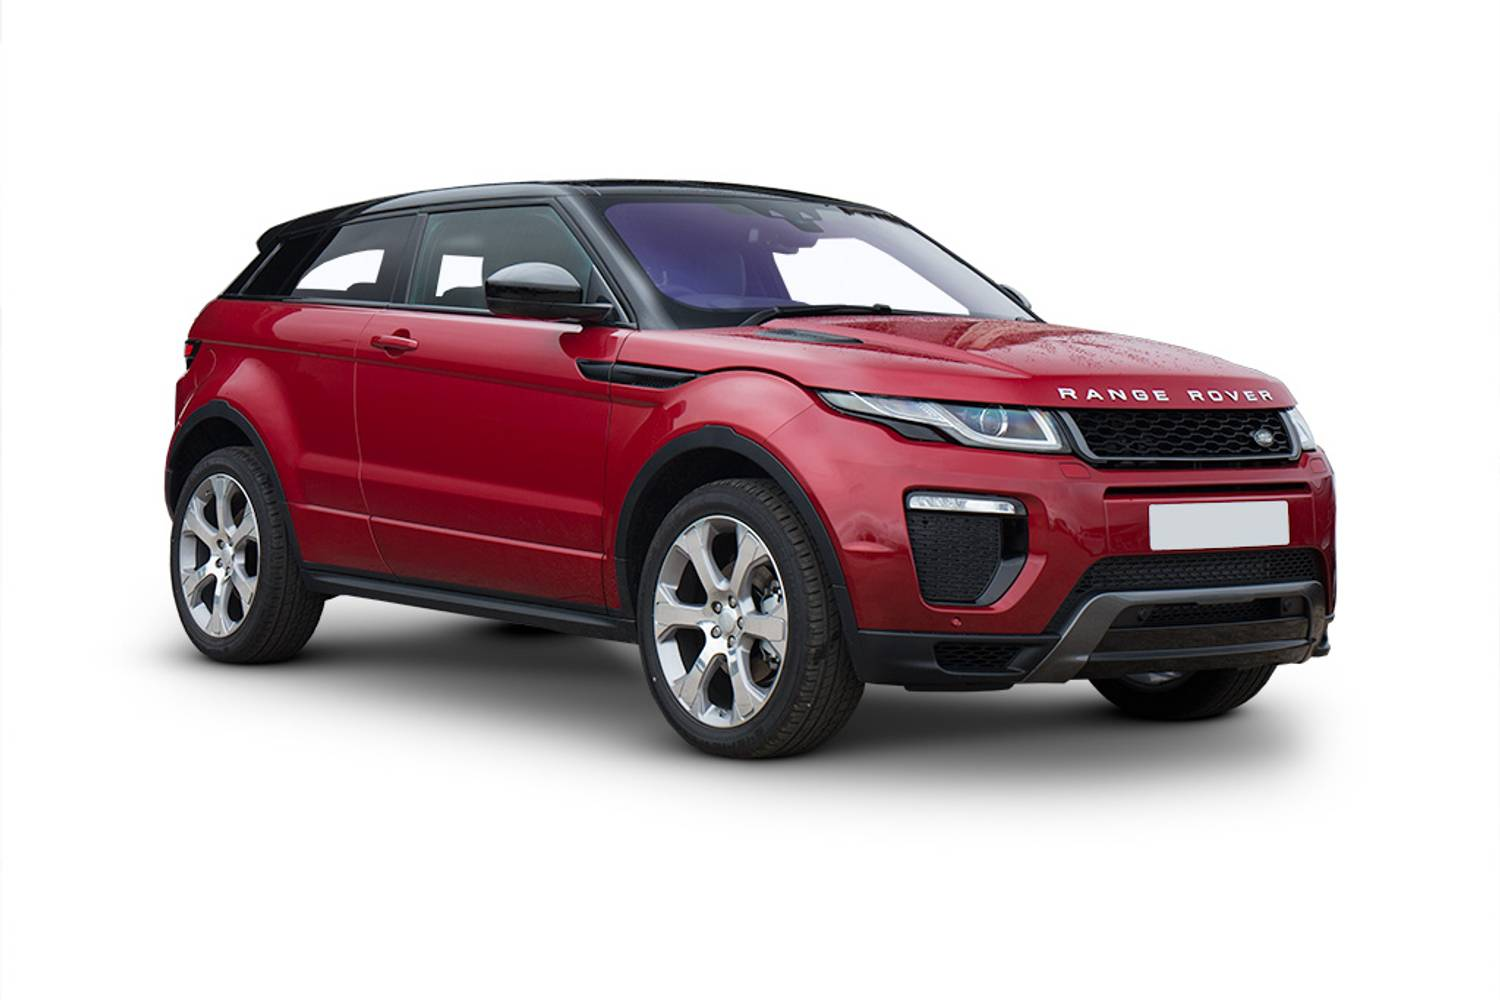 new land rover evoque. range rover evoque coupe 2.0 3dr front three quarter new land